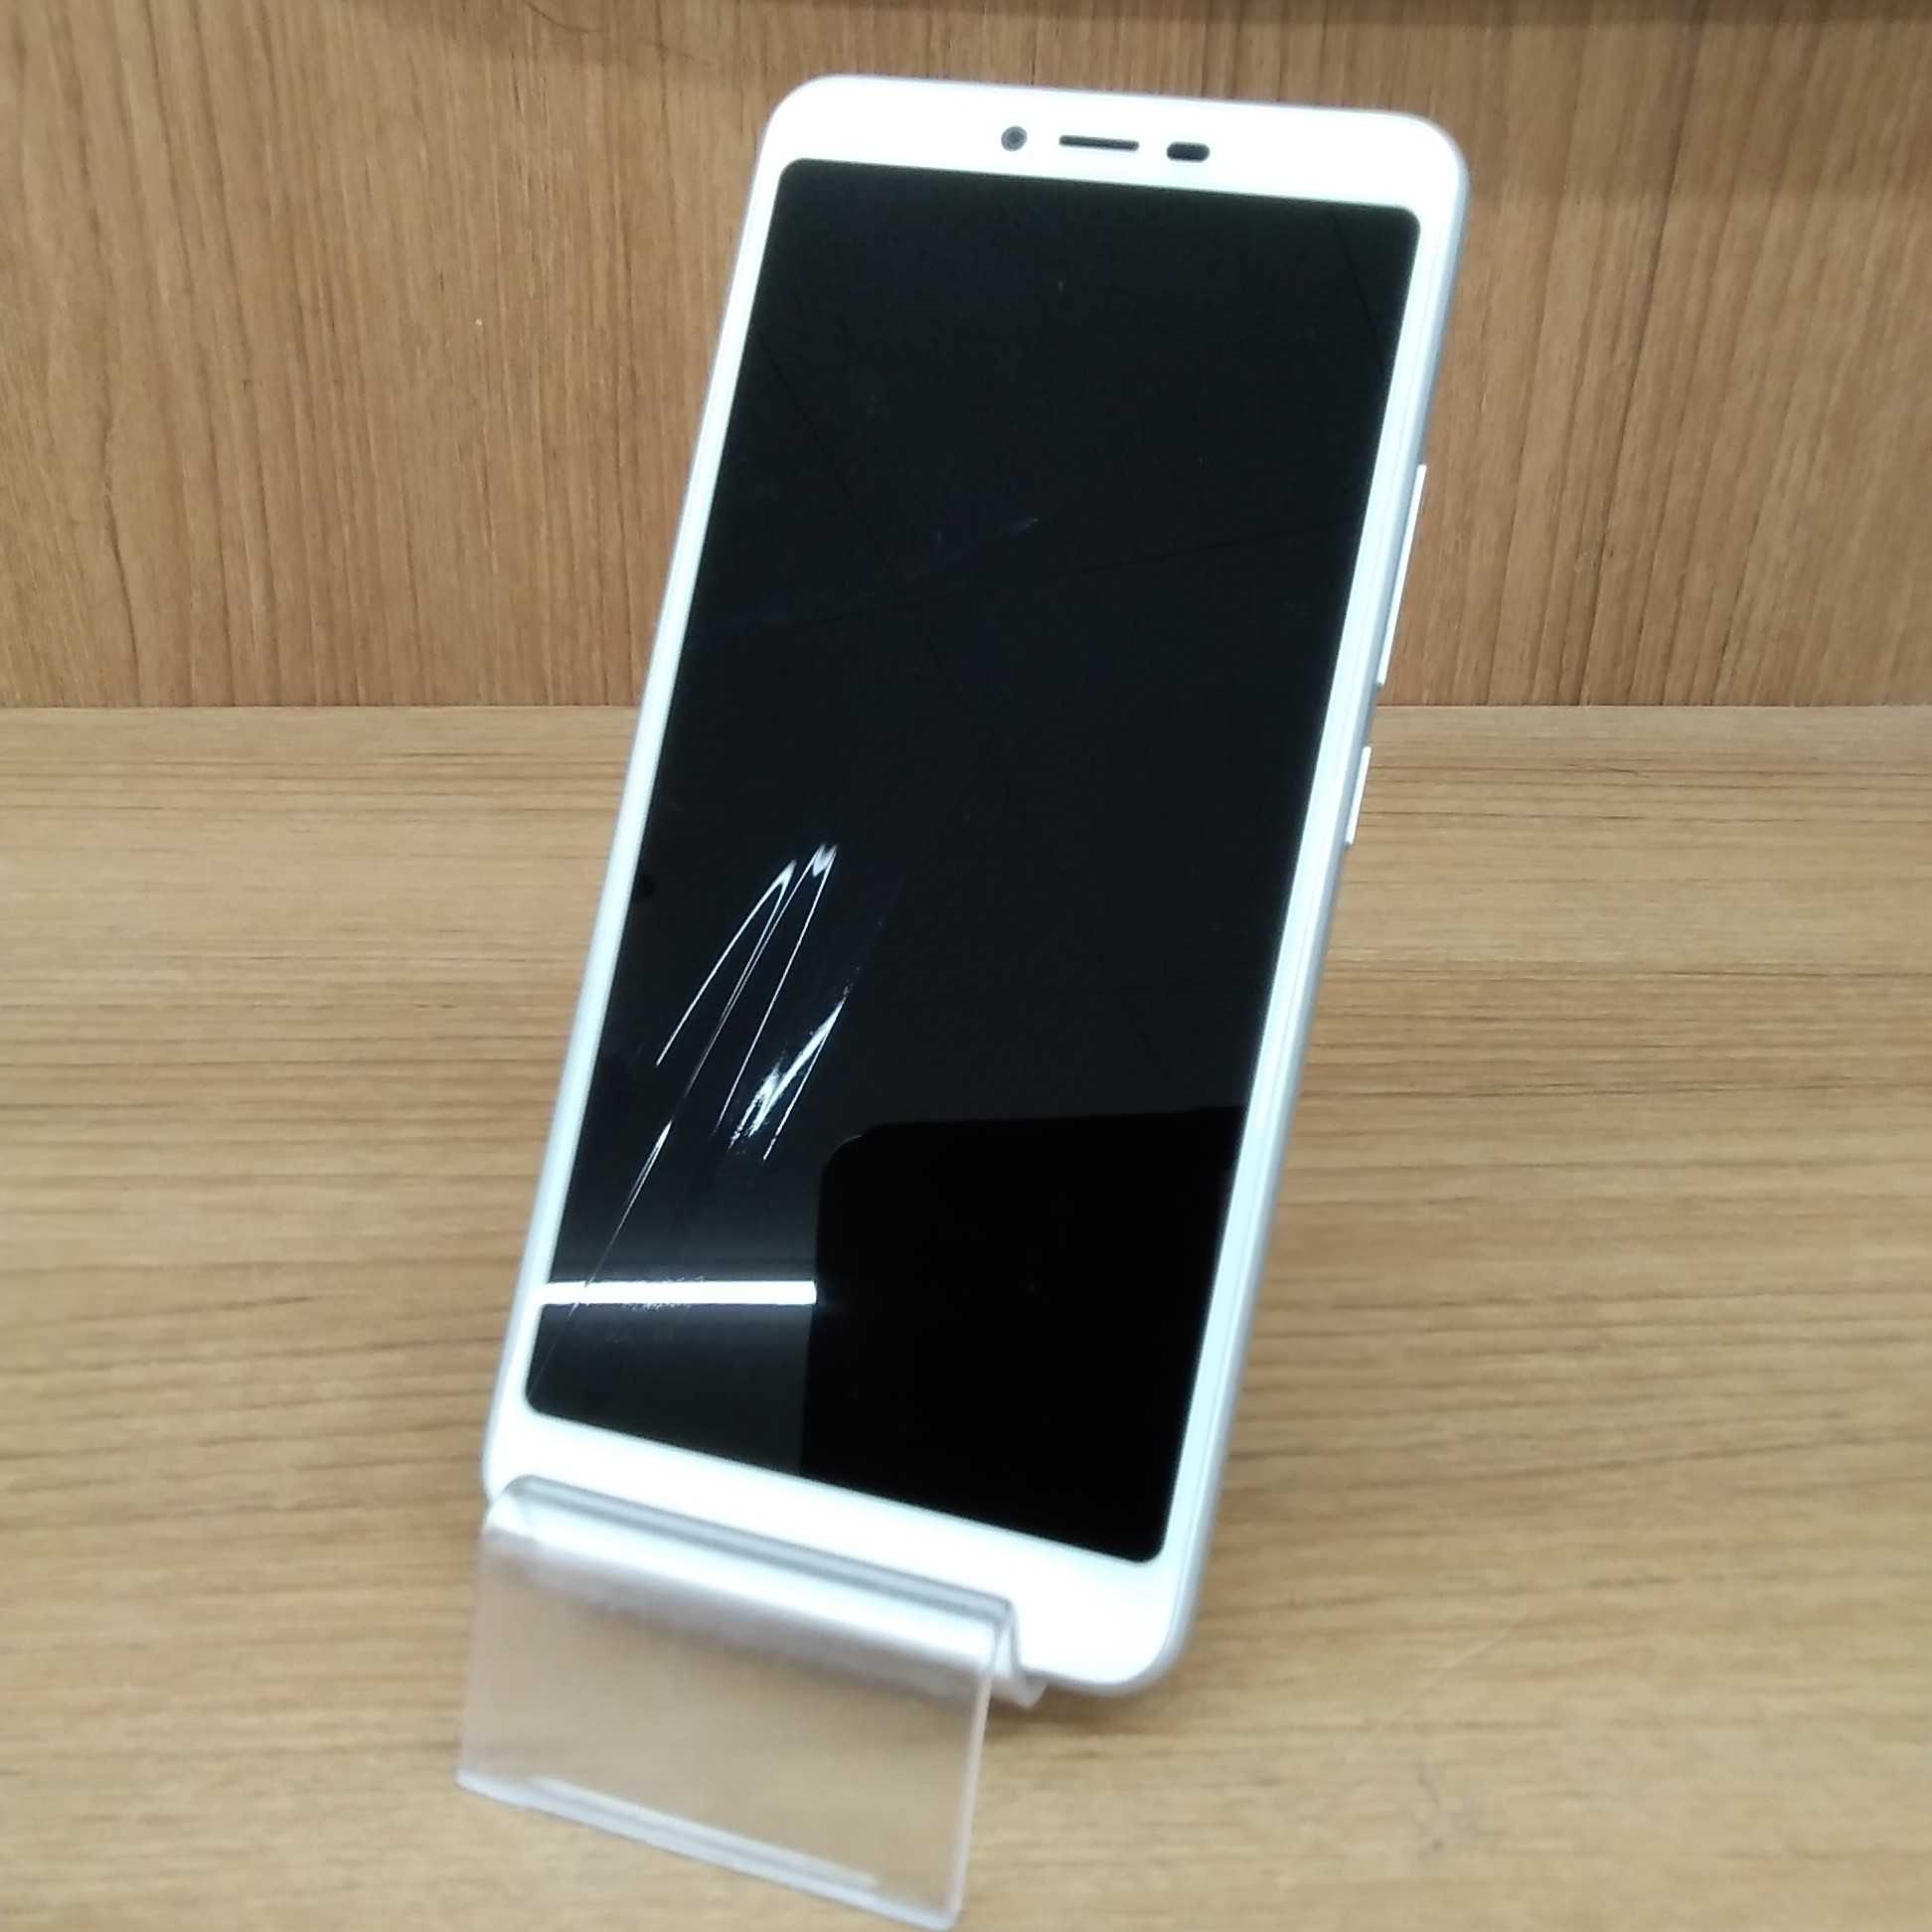 【Y!MOBILE】Androidスマホ ZTE/Y!MOBILE